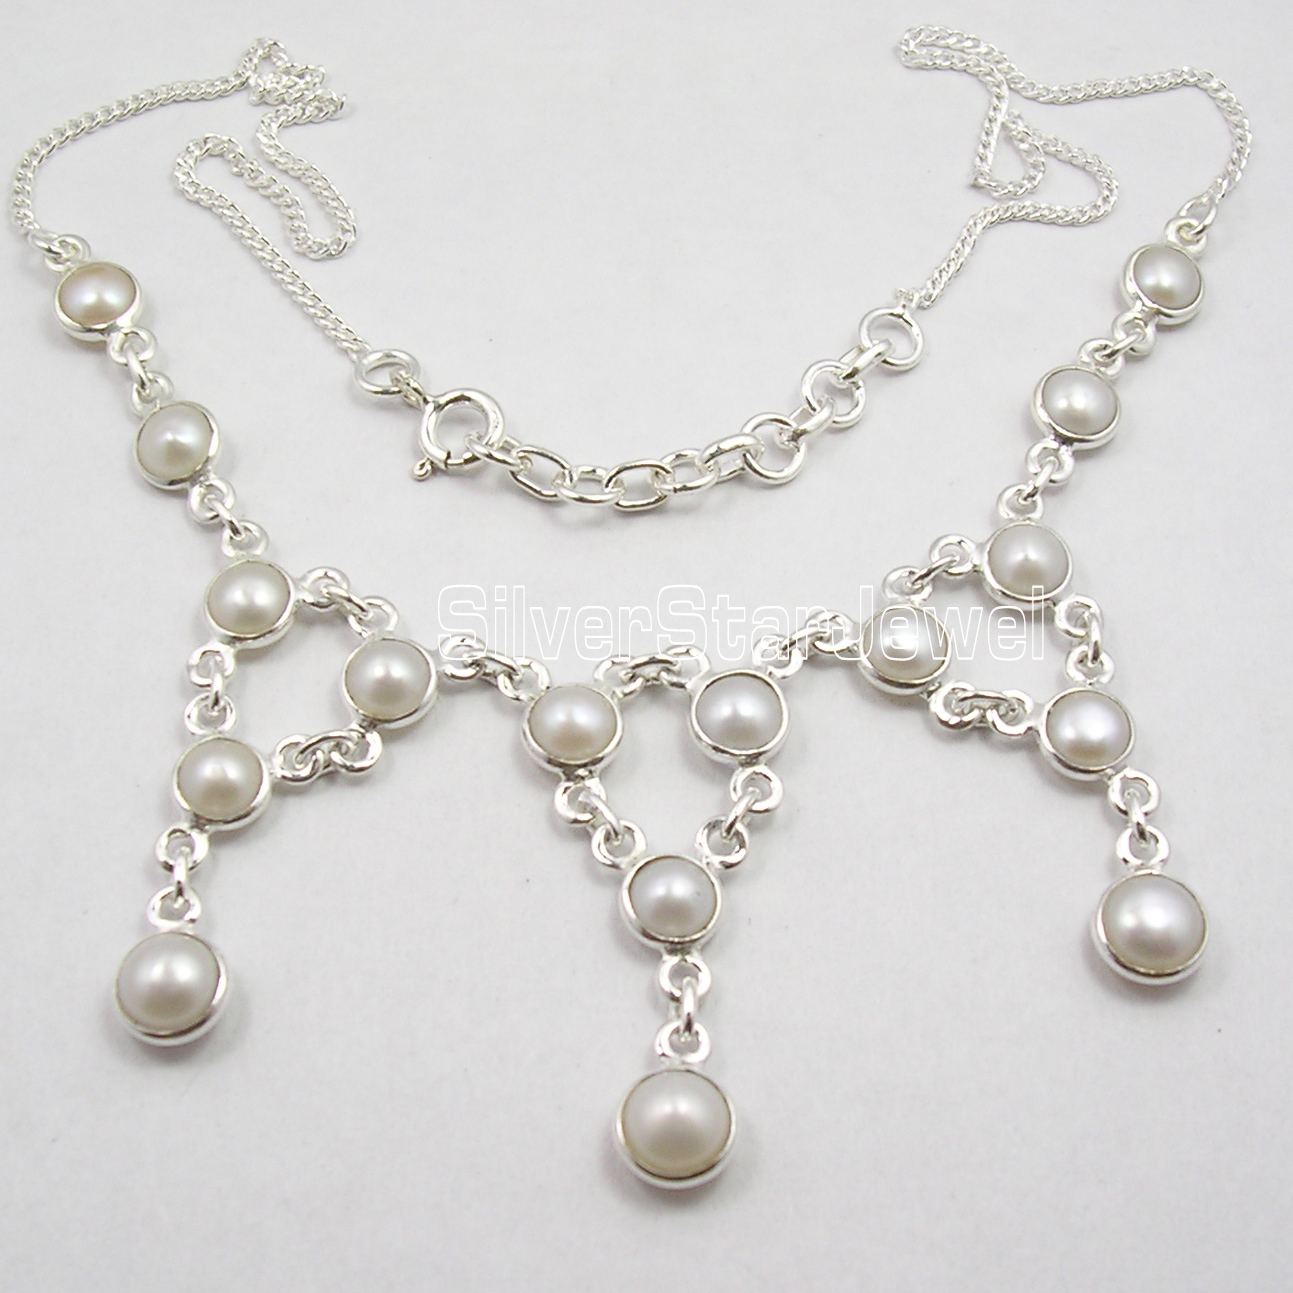 Chanti International Silver AAA WHITE SEA PEARL CHARMING Large Necklace 17 5/8 Inches sea horse 1 5 1 8